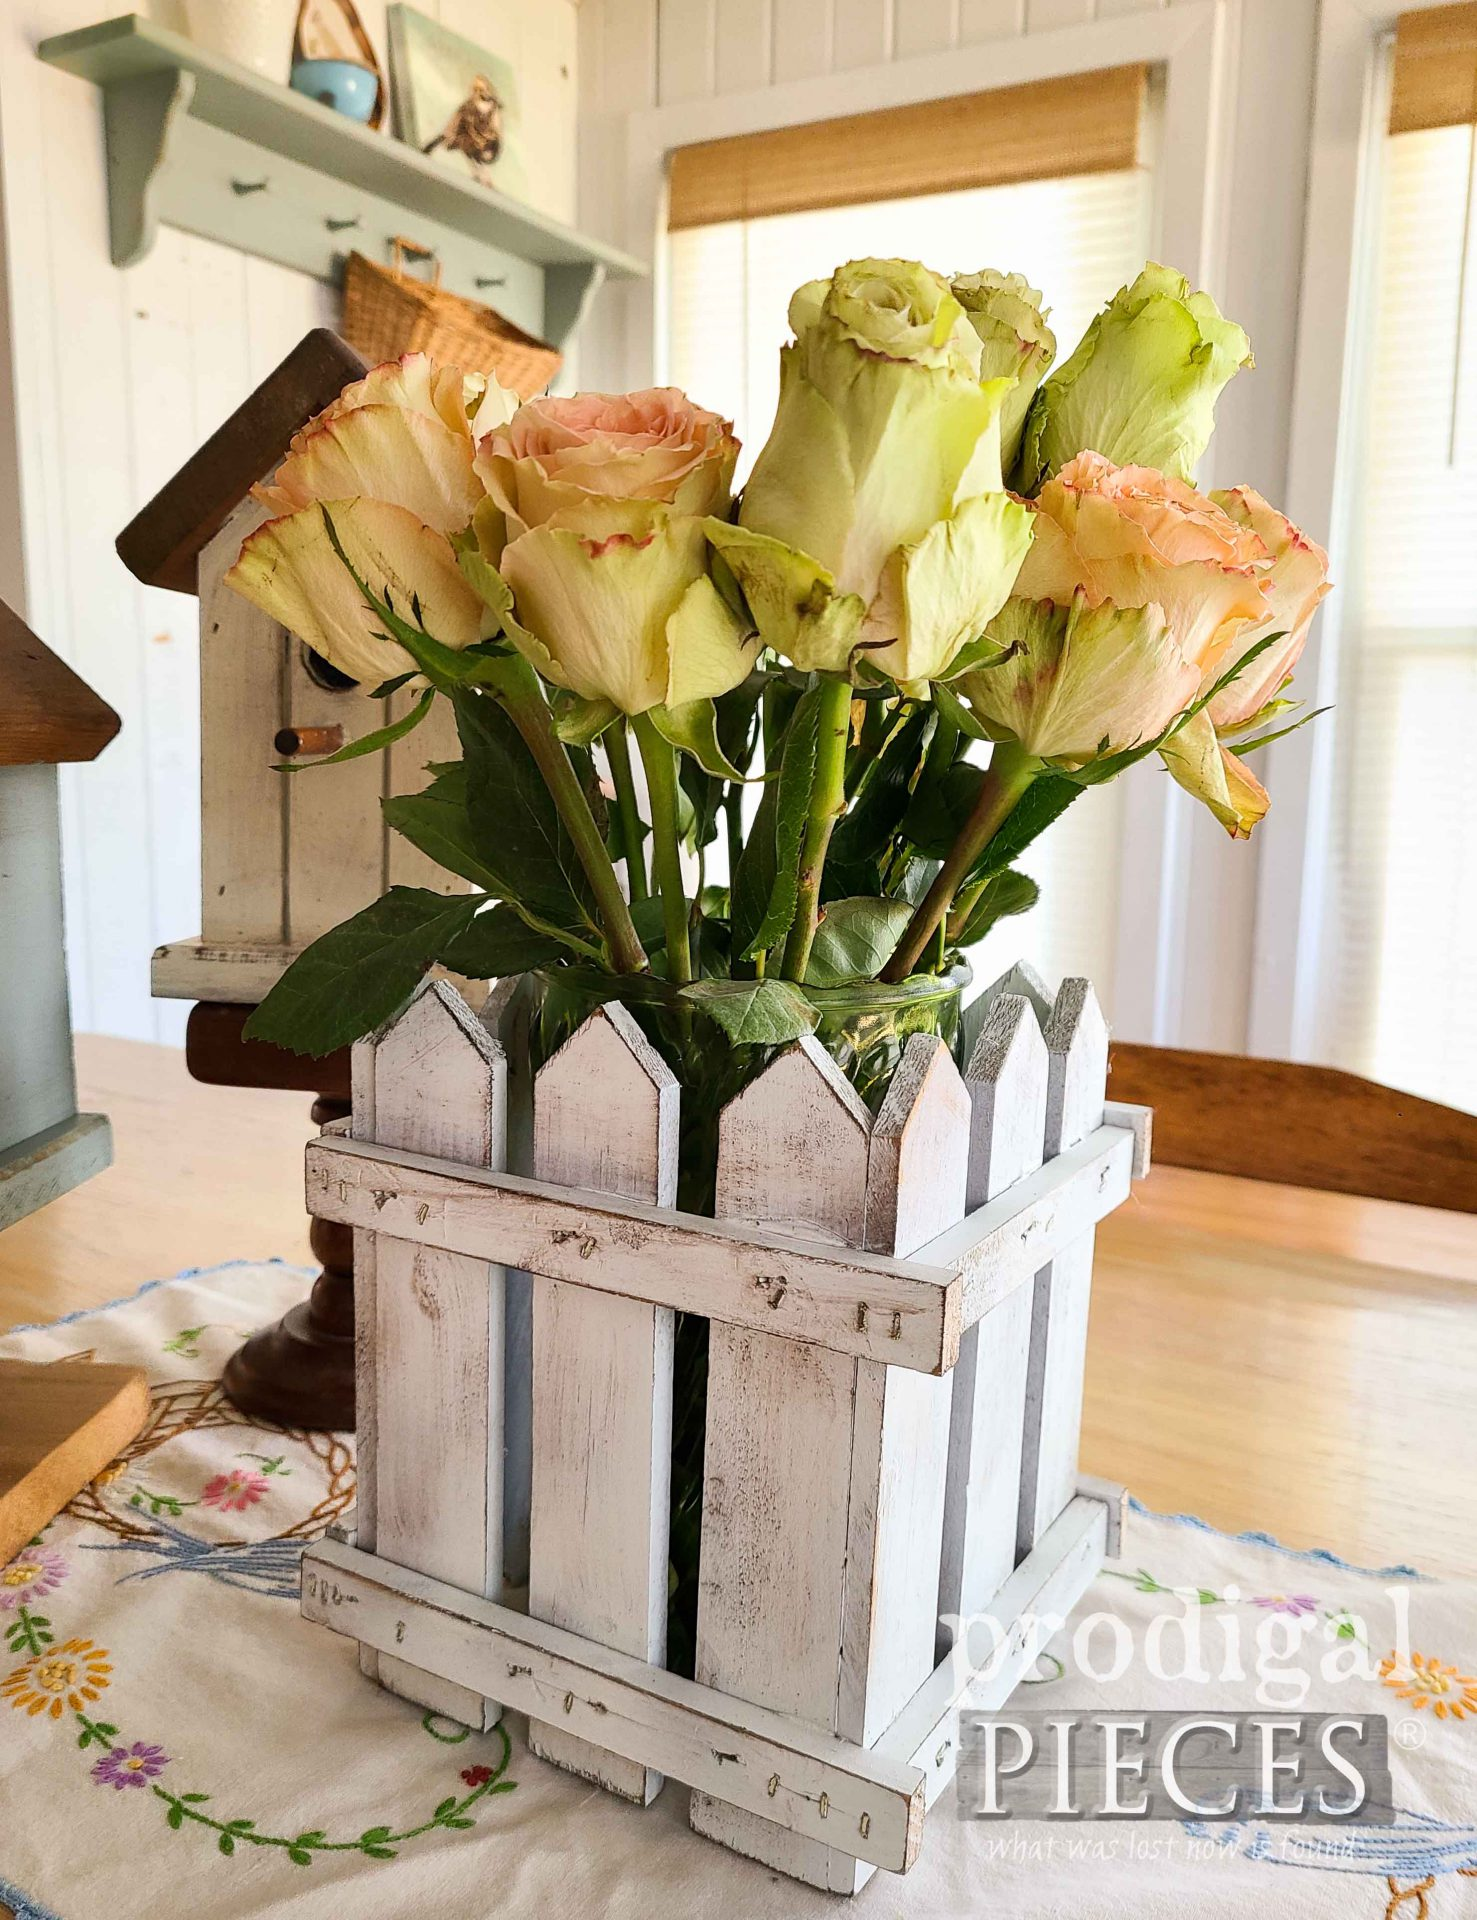 Handmade White Picket Fence Box for Home Decor from Upcycled Vintage Shelf by Larissa of Prodigal Pieces   prodigalpieces.com #prodigalpieces #handmade #home #homedecor #diy